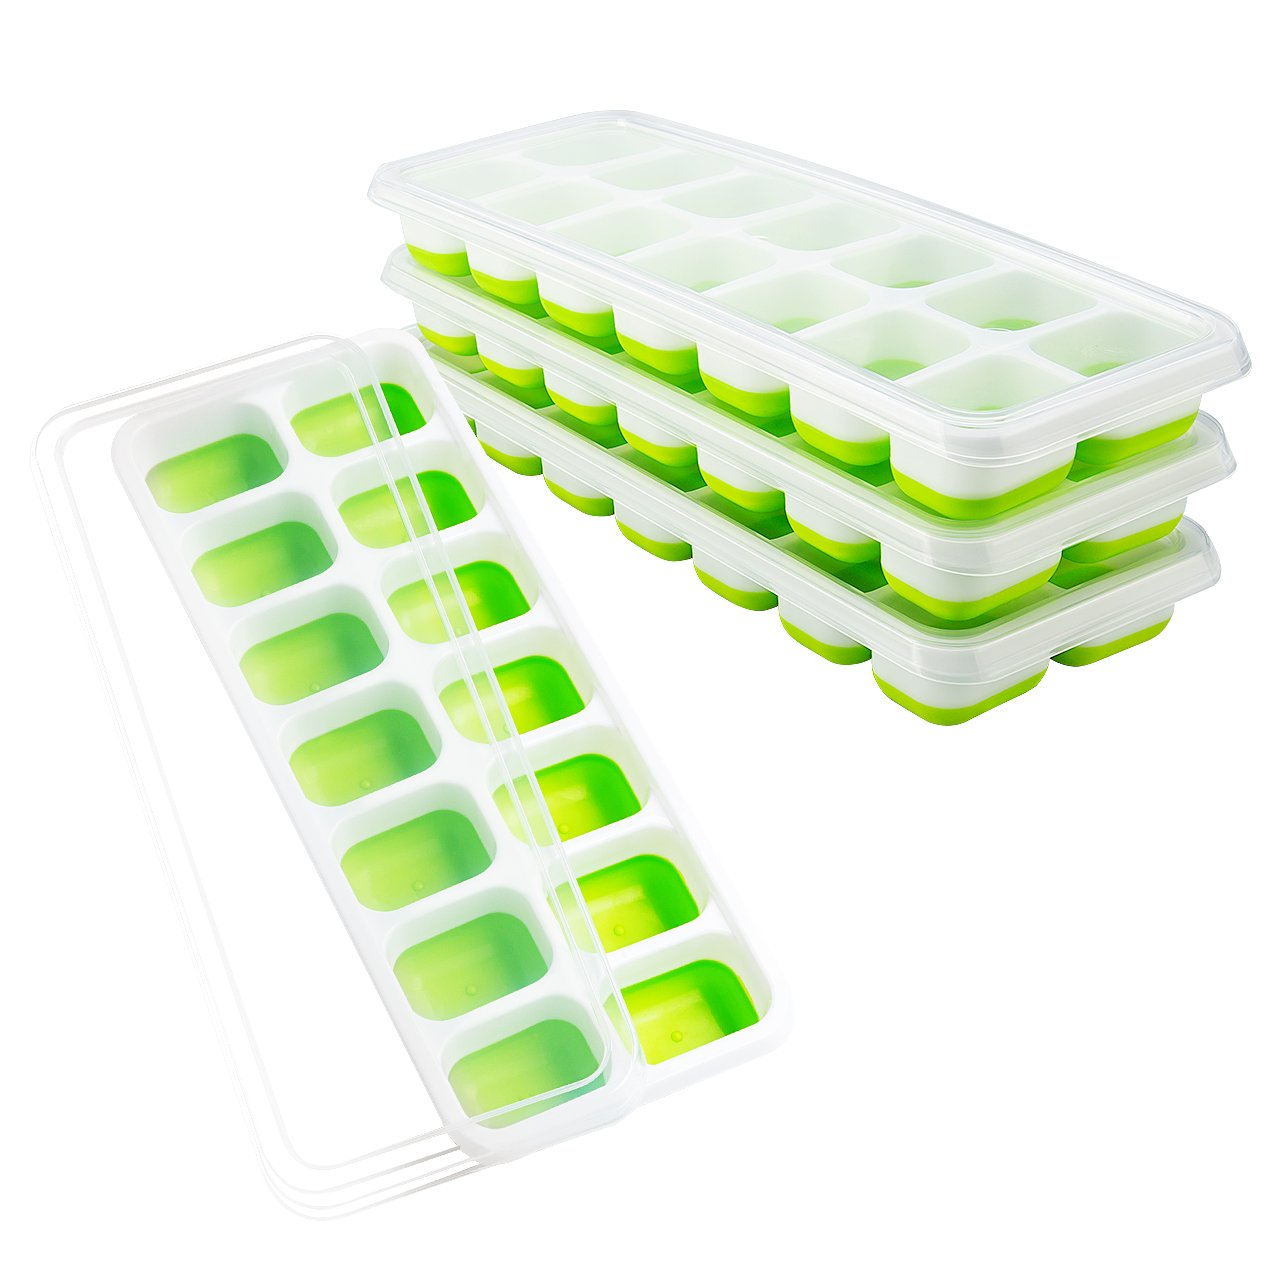 OMorc Ice Cube Trays 4 Pack, Easy-Release Silicone and Flexible 14-Ice Trays with Spill-Resistant Removable Lid, LFGB Certified and BPA Free, Stackable Durable and Dishwasher Safe by OMORC